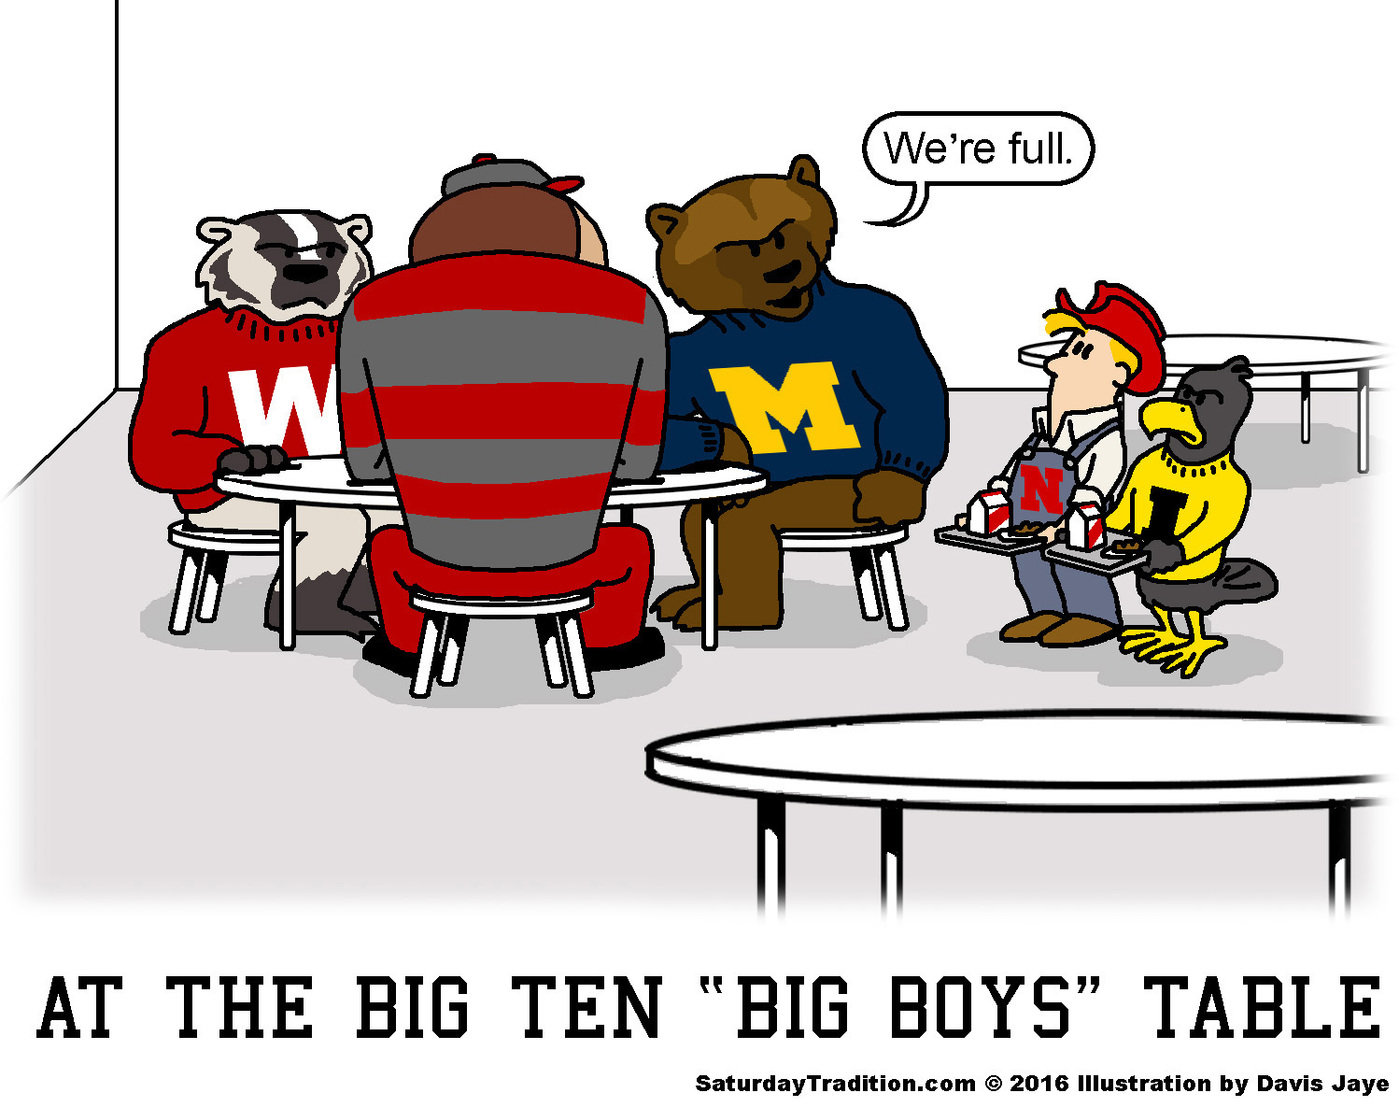 Pleasing Big Ten Football Cartoons By Davis Jaye At Coroflot Com Gmtry Best Dining Table And Chair Ideas Images Gmtryco